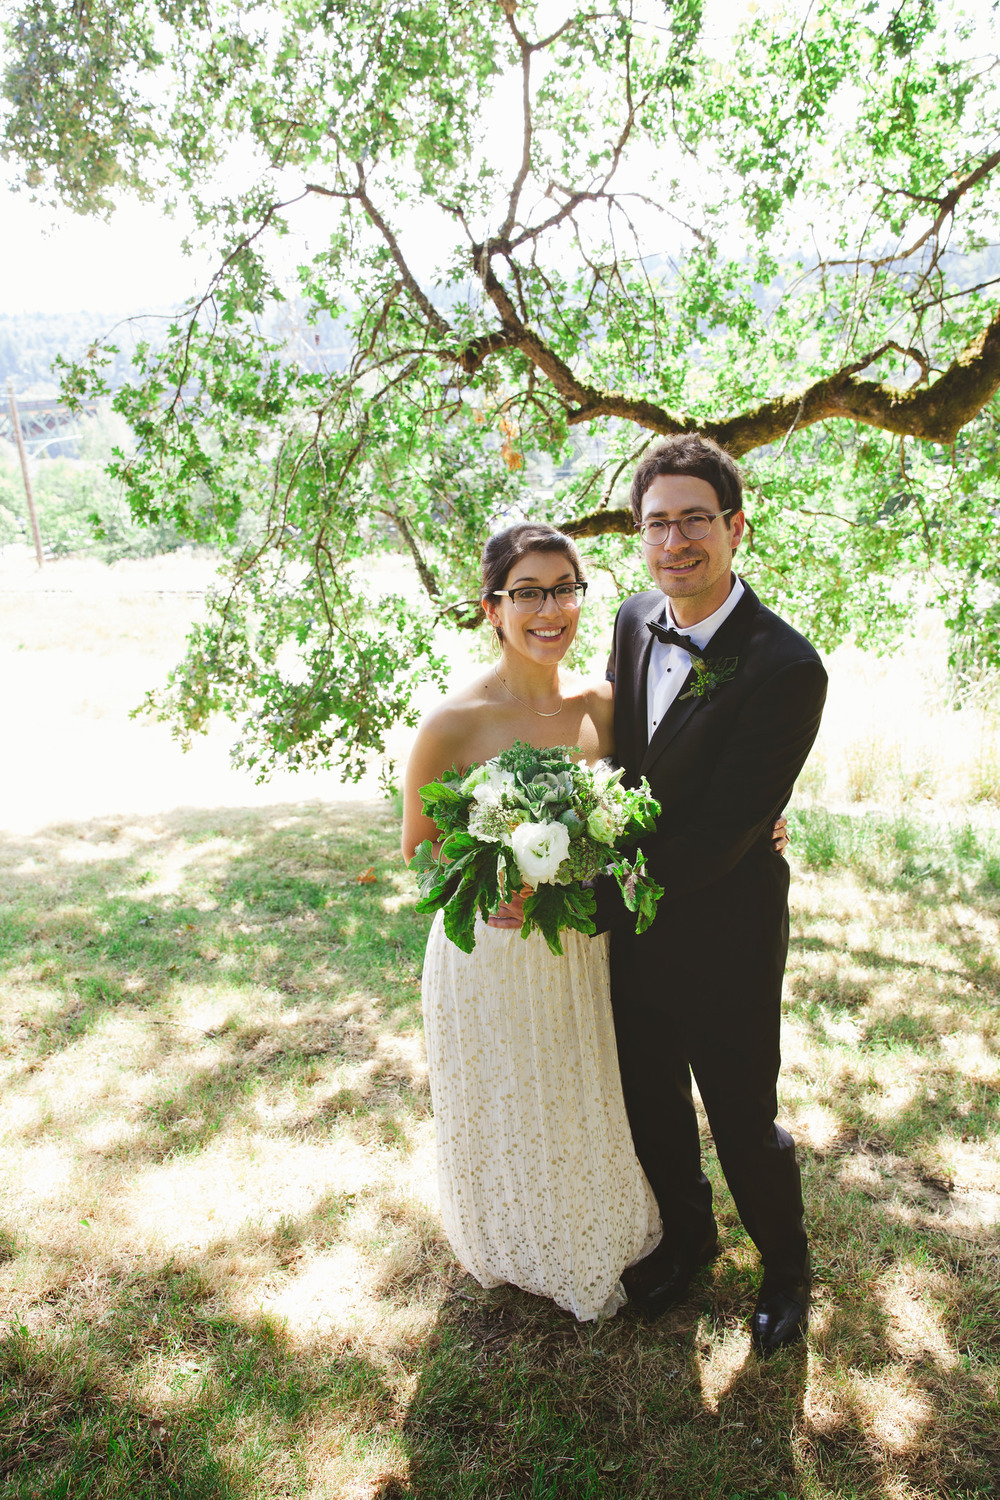 bride-and-groom-bouquet.jpg